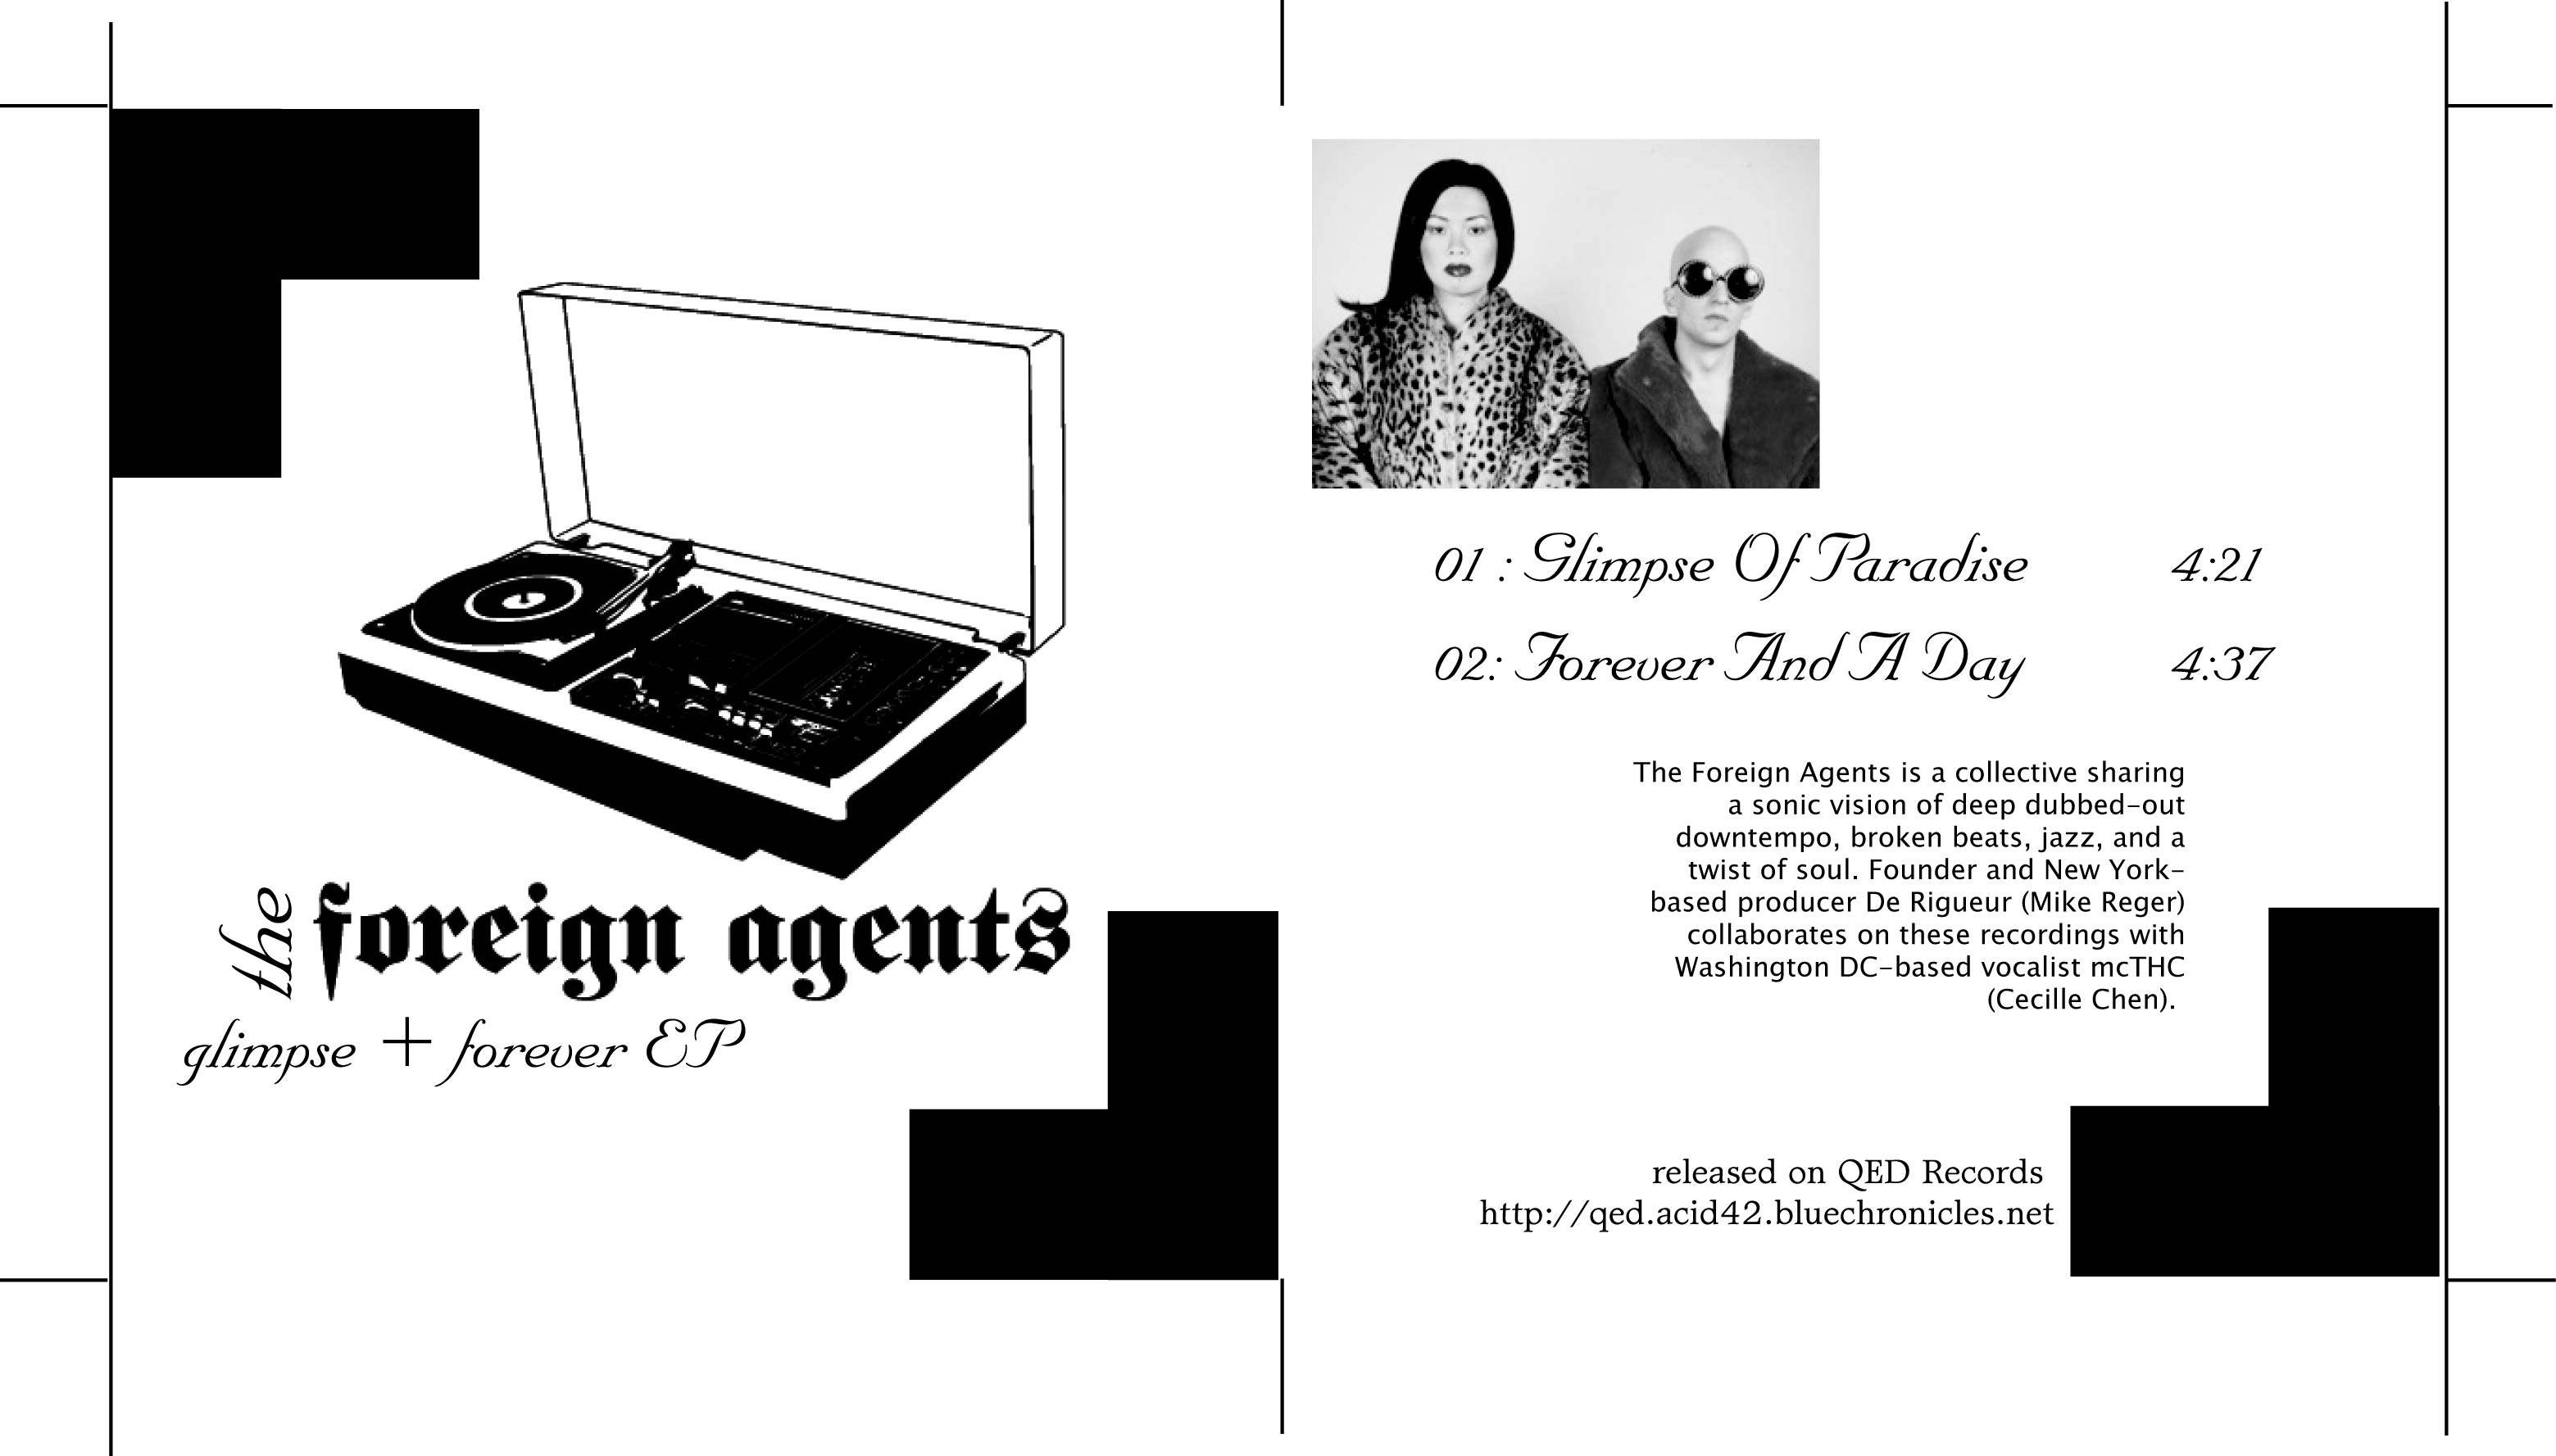 (qd-4215) The Foreign Agents - Glimpse + Forever